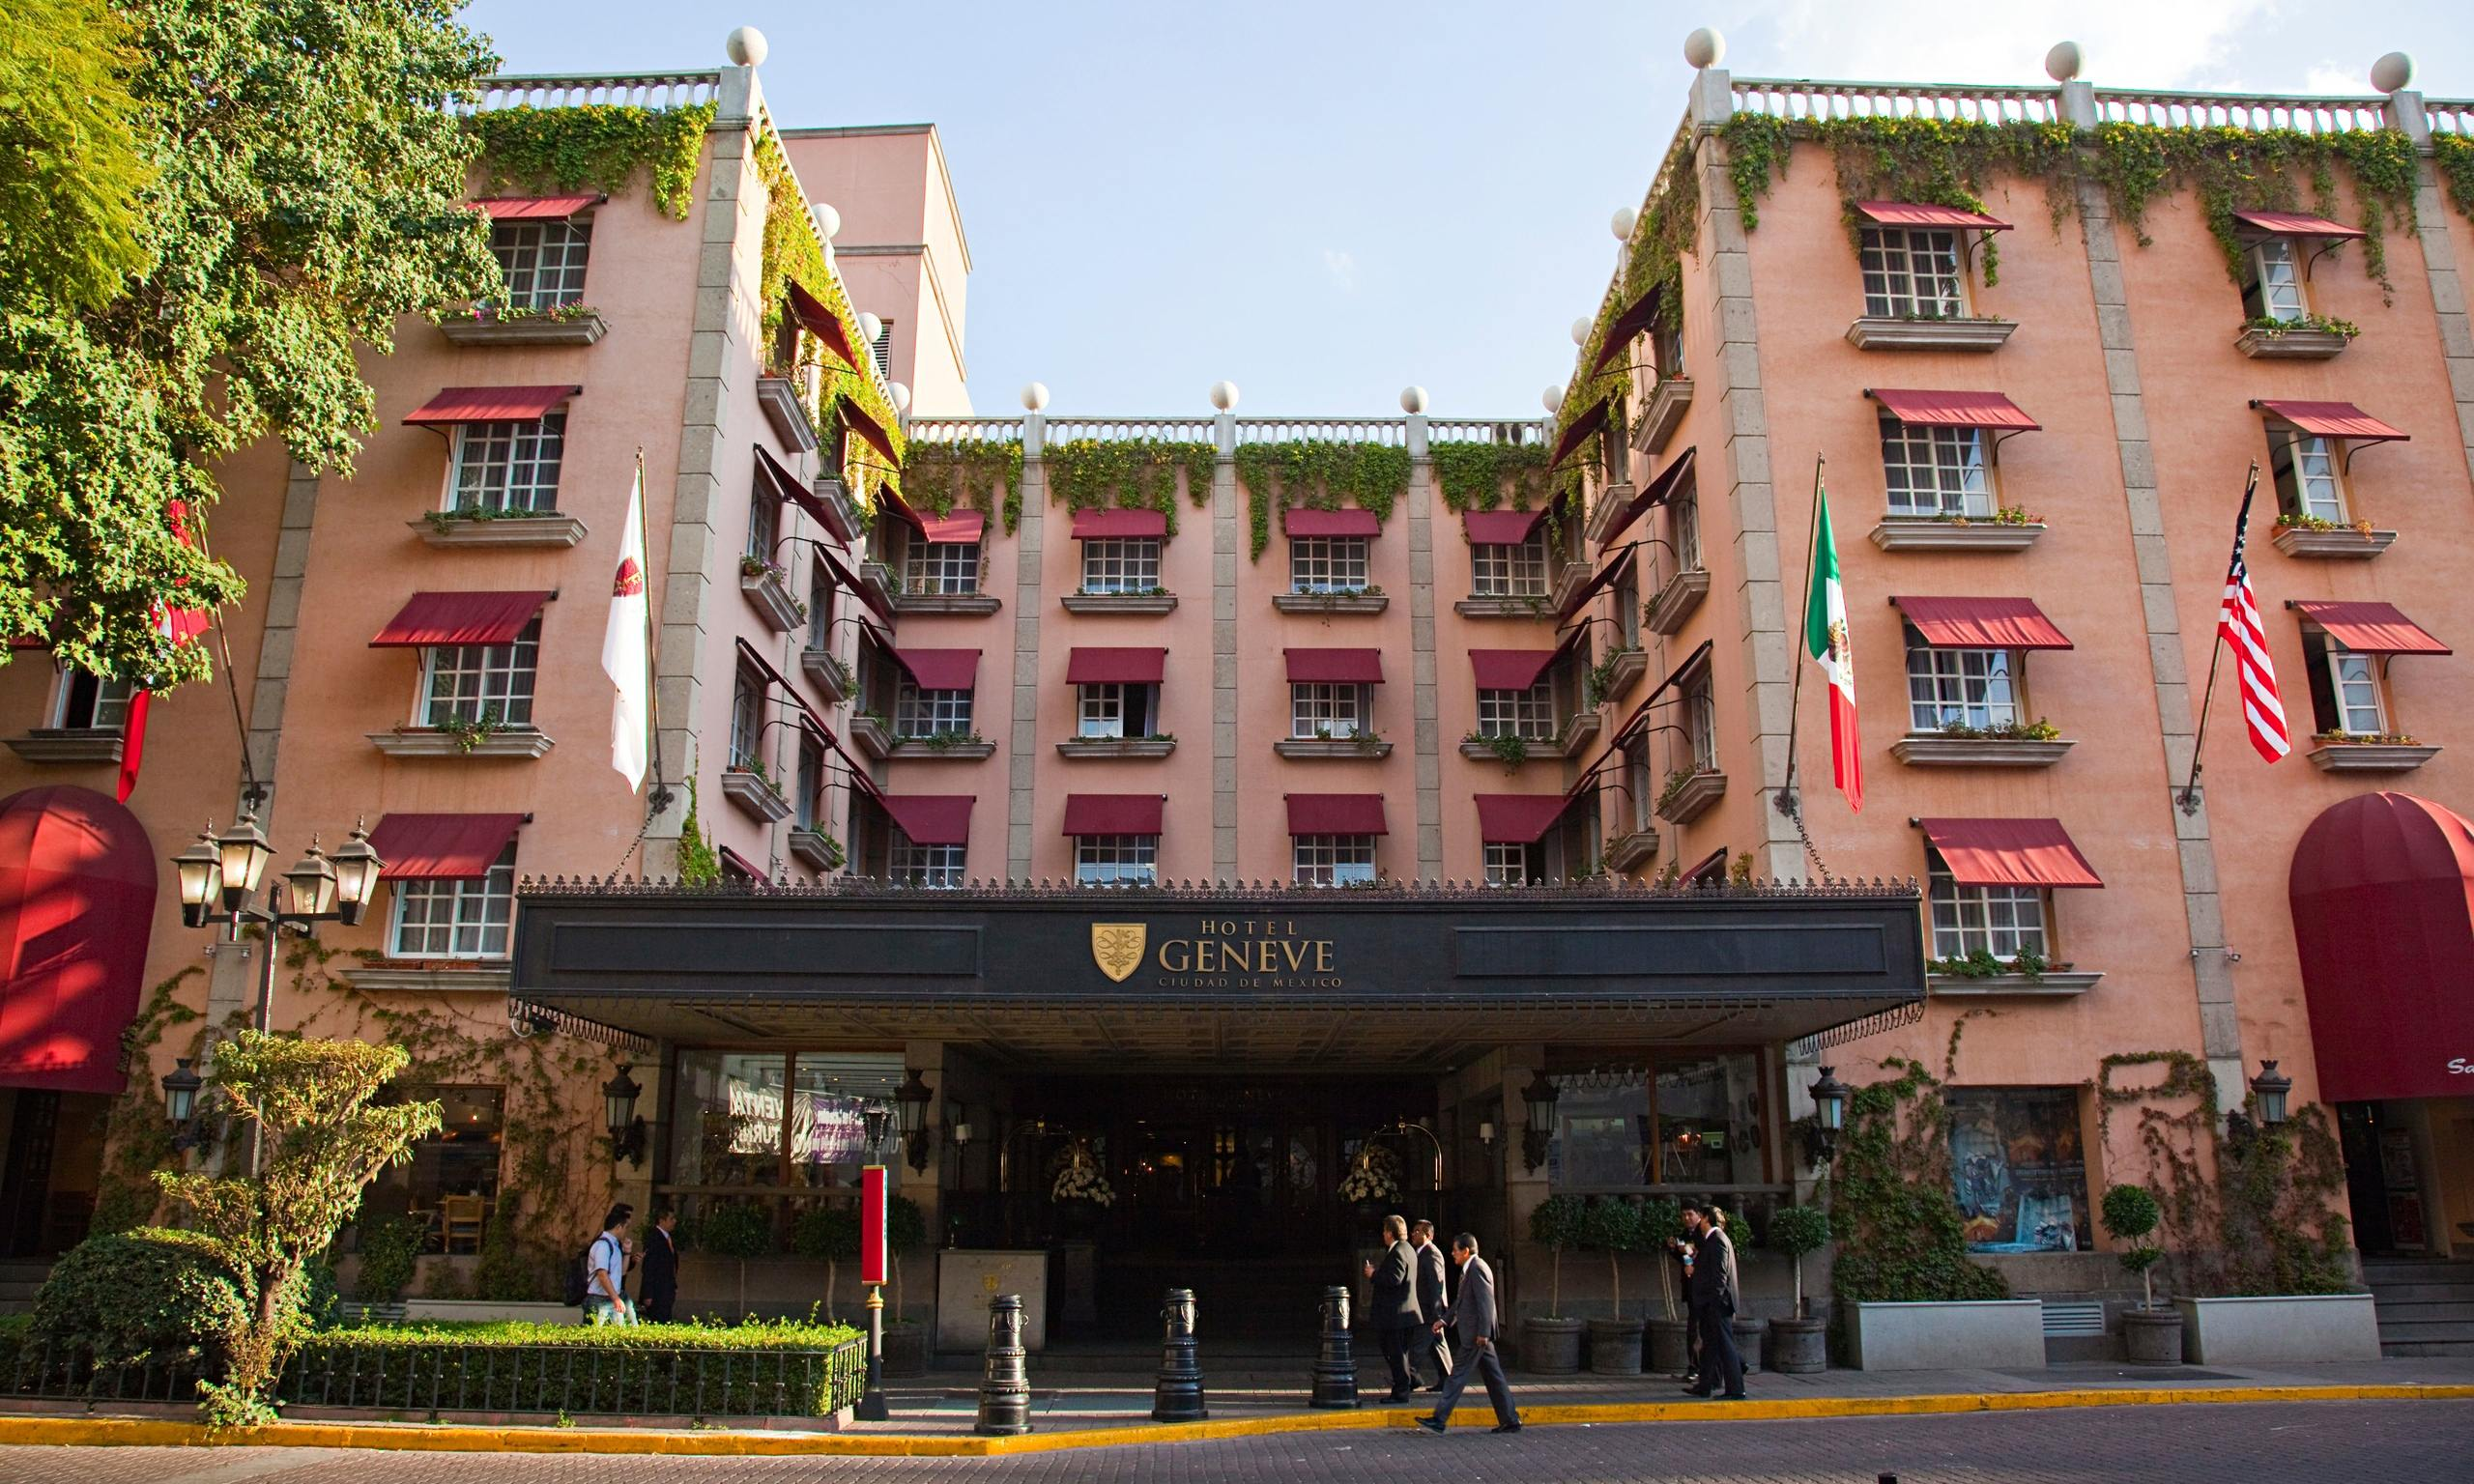 Top 10 budget hotels and b bs in mexico city travel for Design hotel f 6 genf